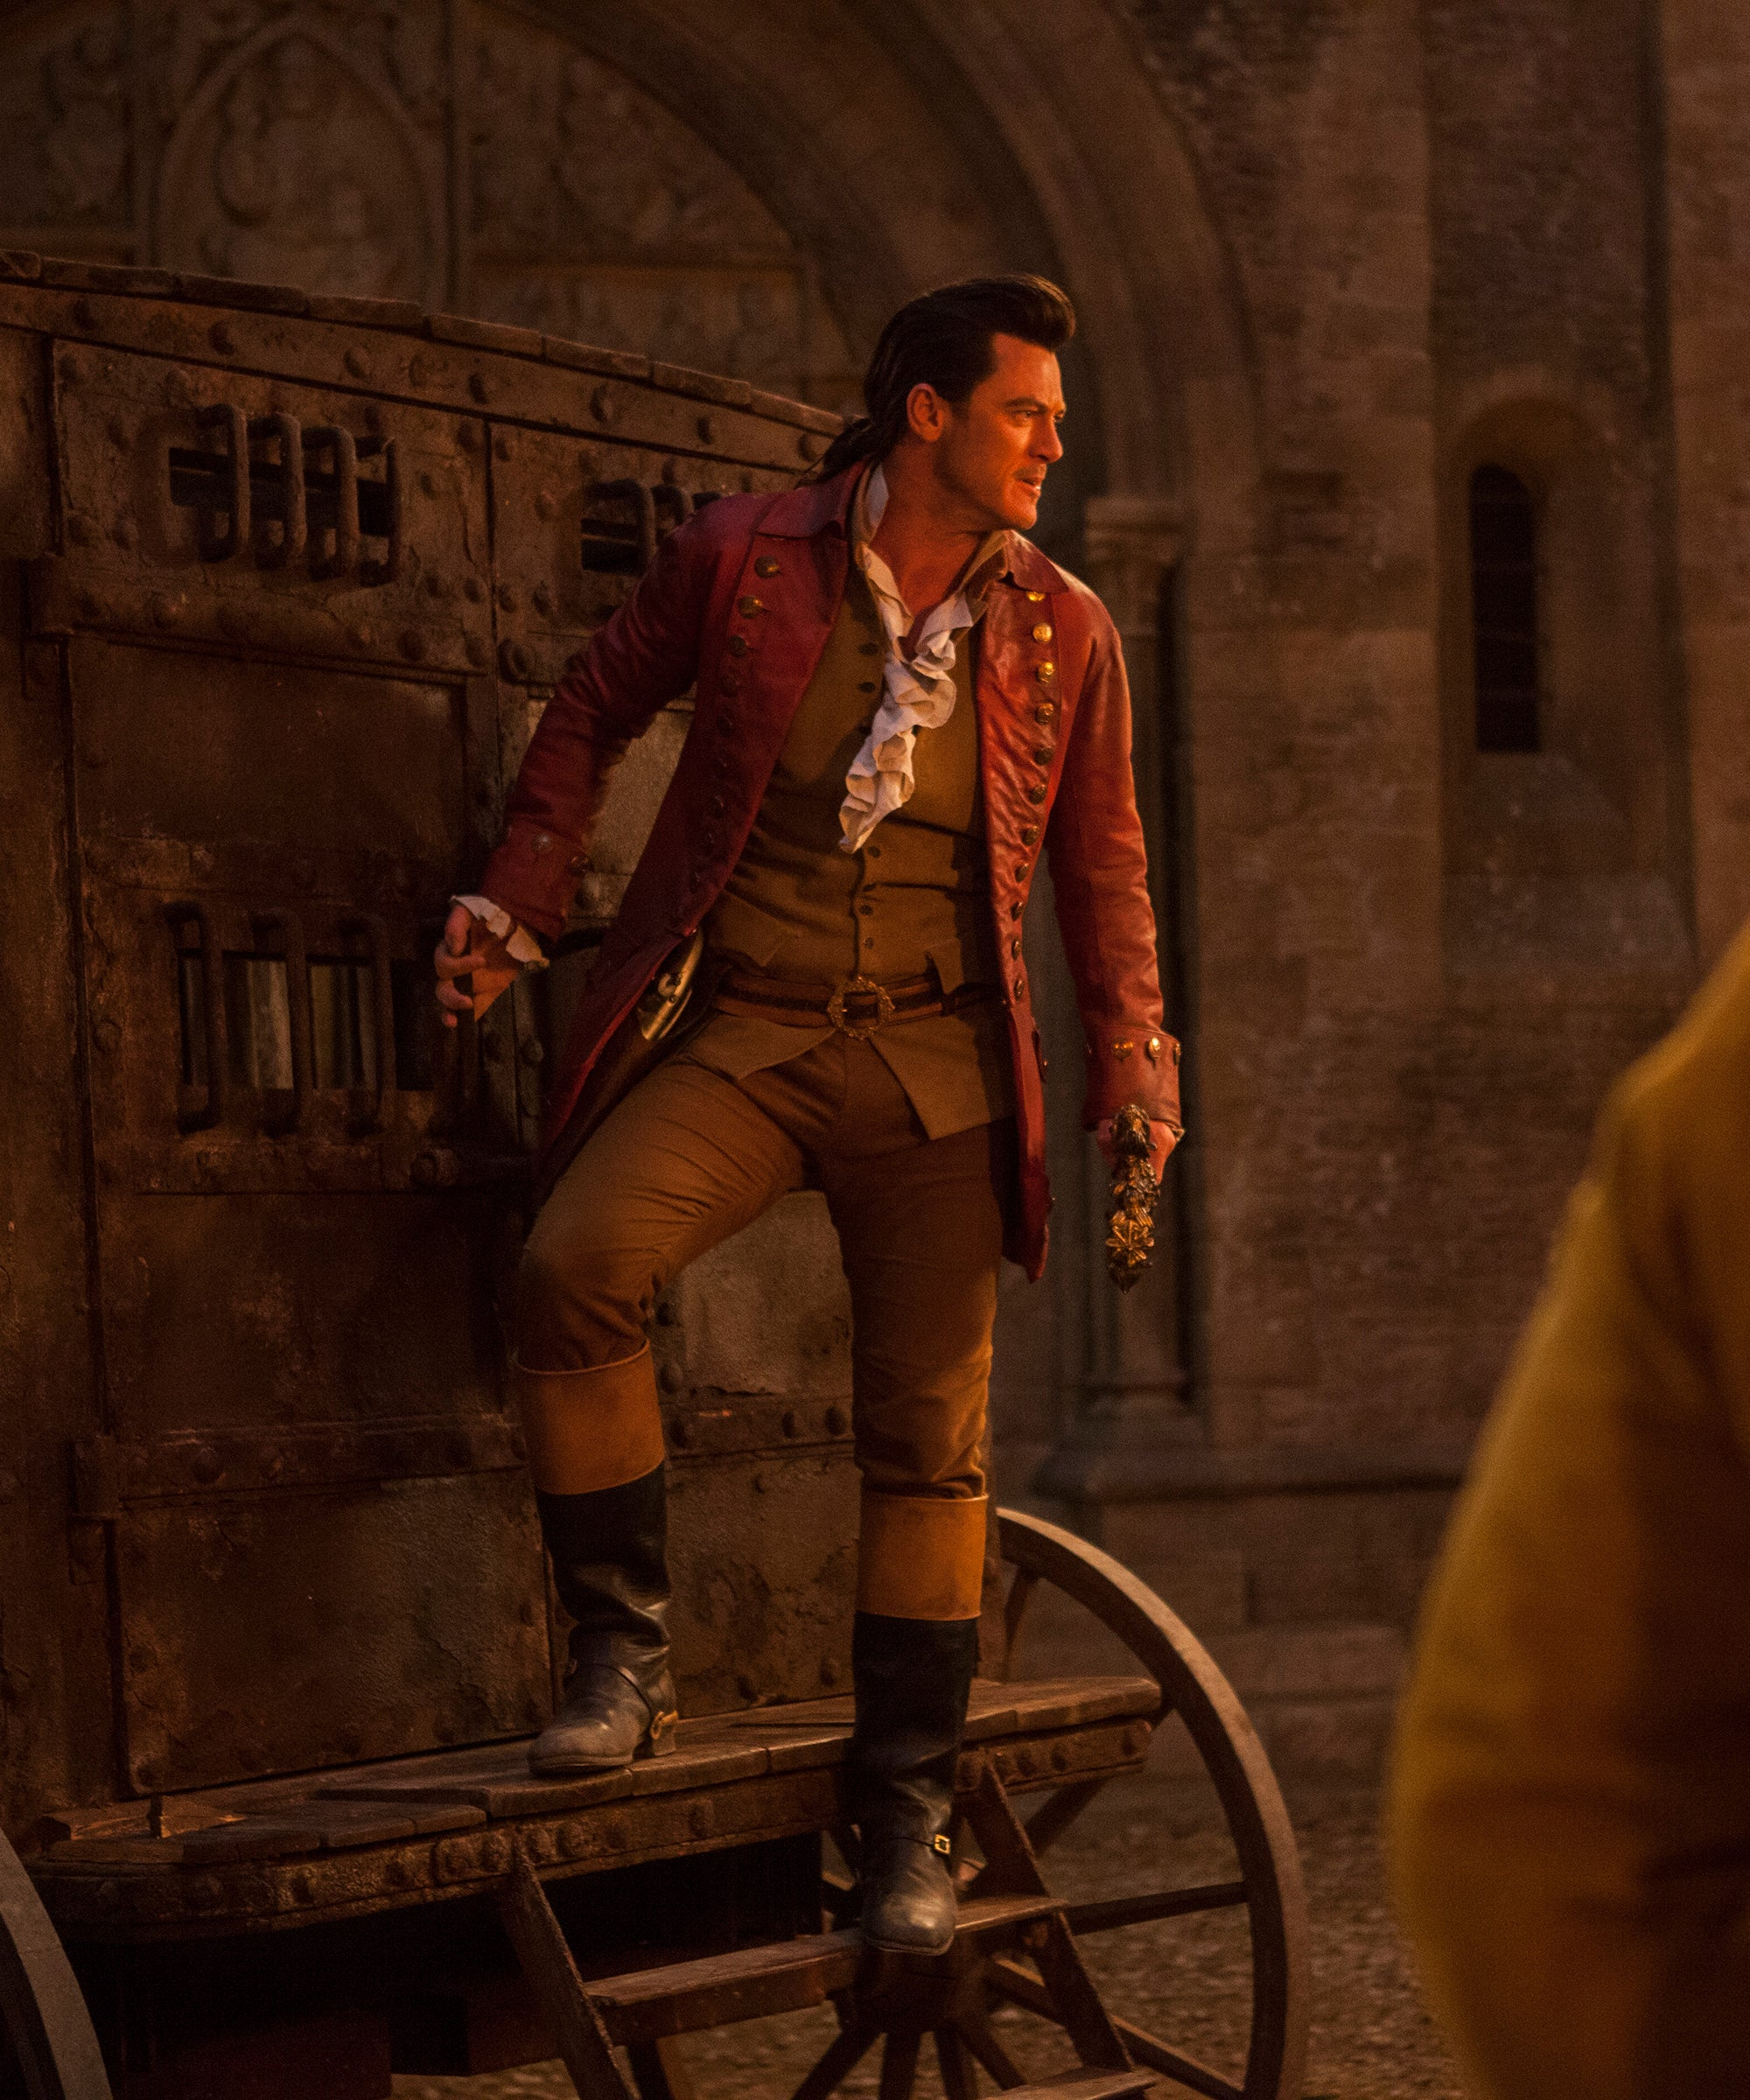 Beauty And The Beast Show About Gaston For Disney Plus